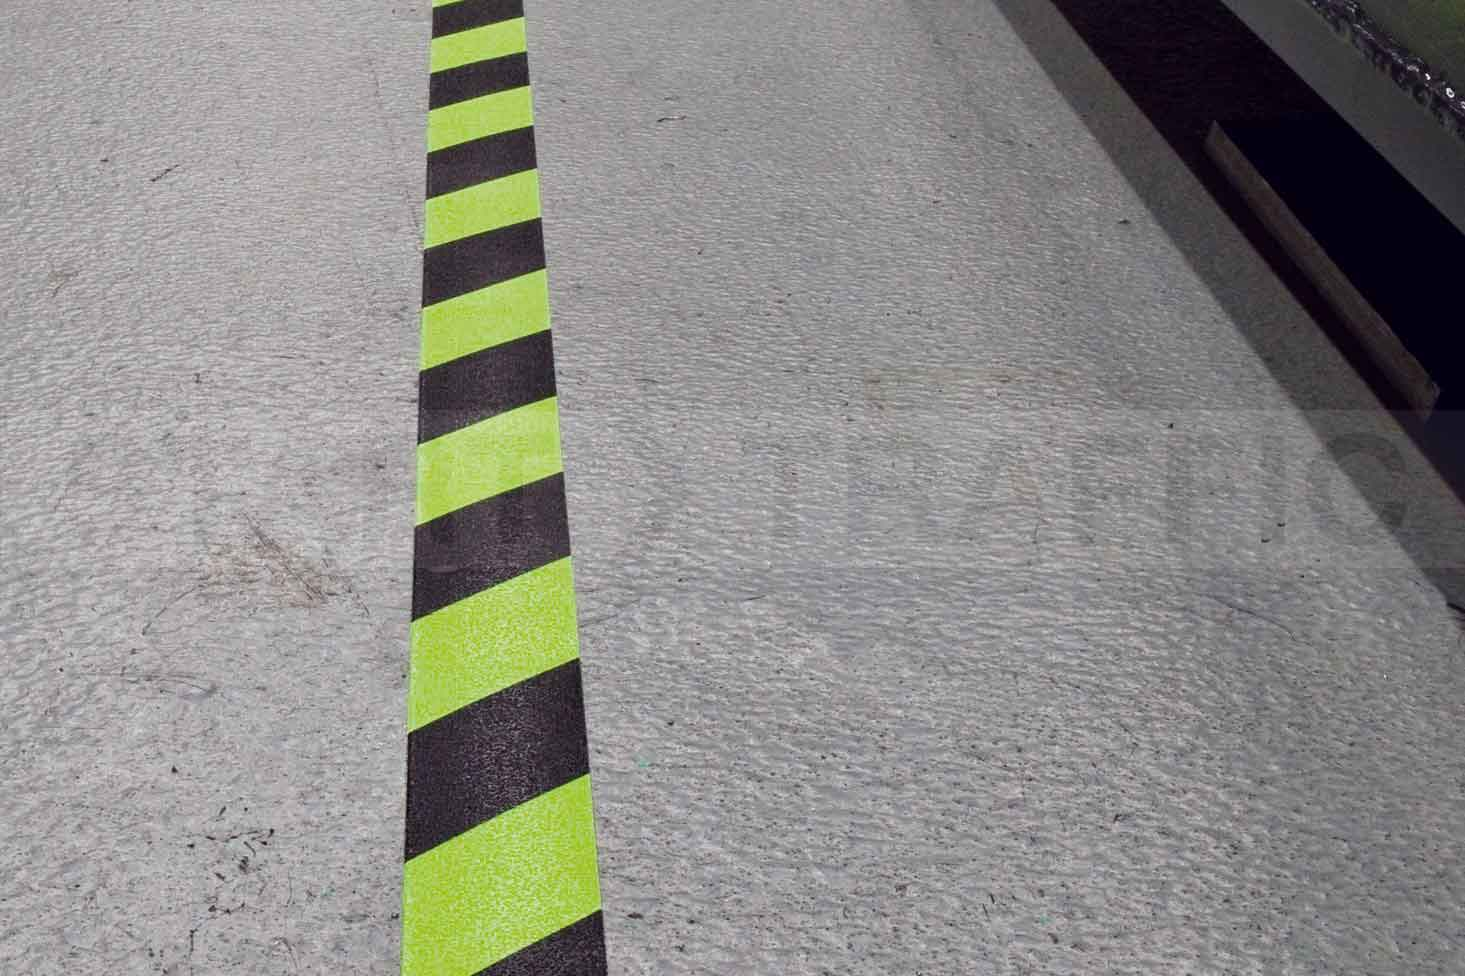 Anti-slip tape chevron in use